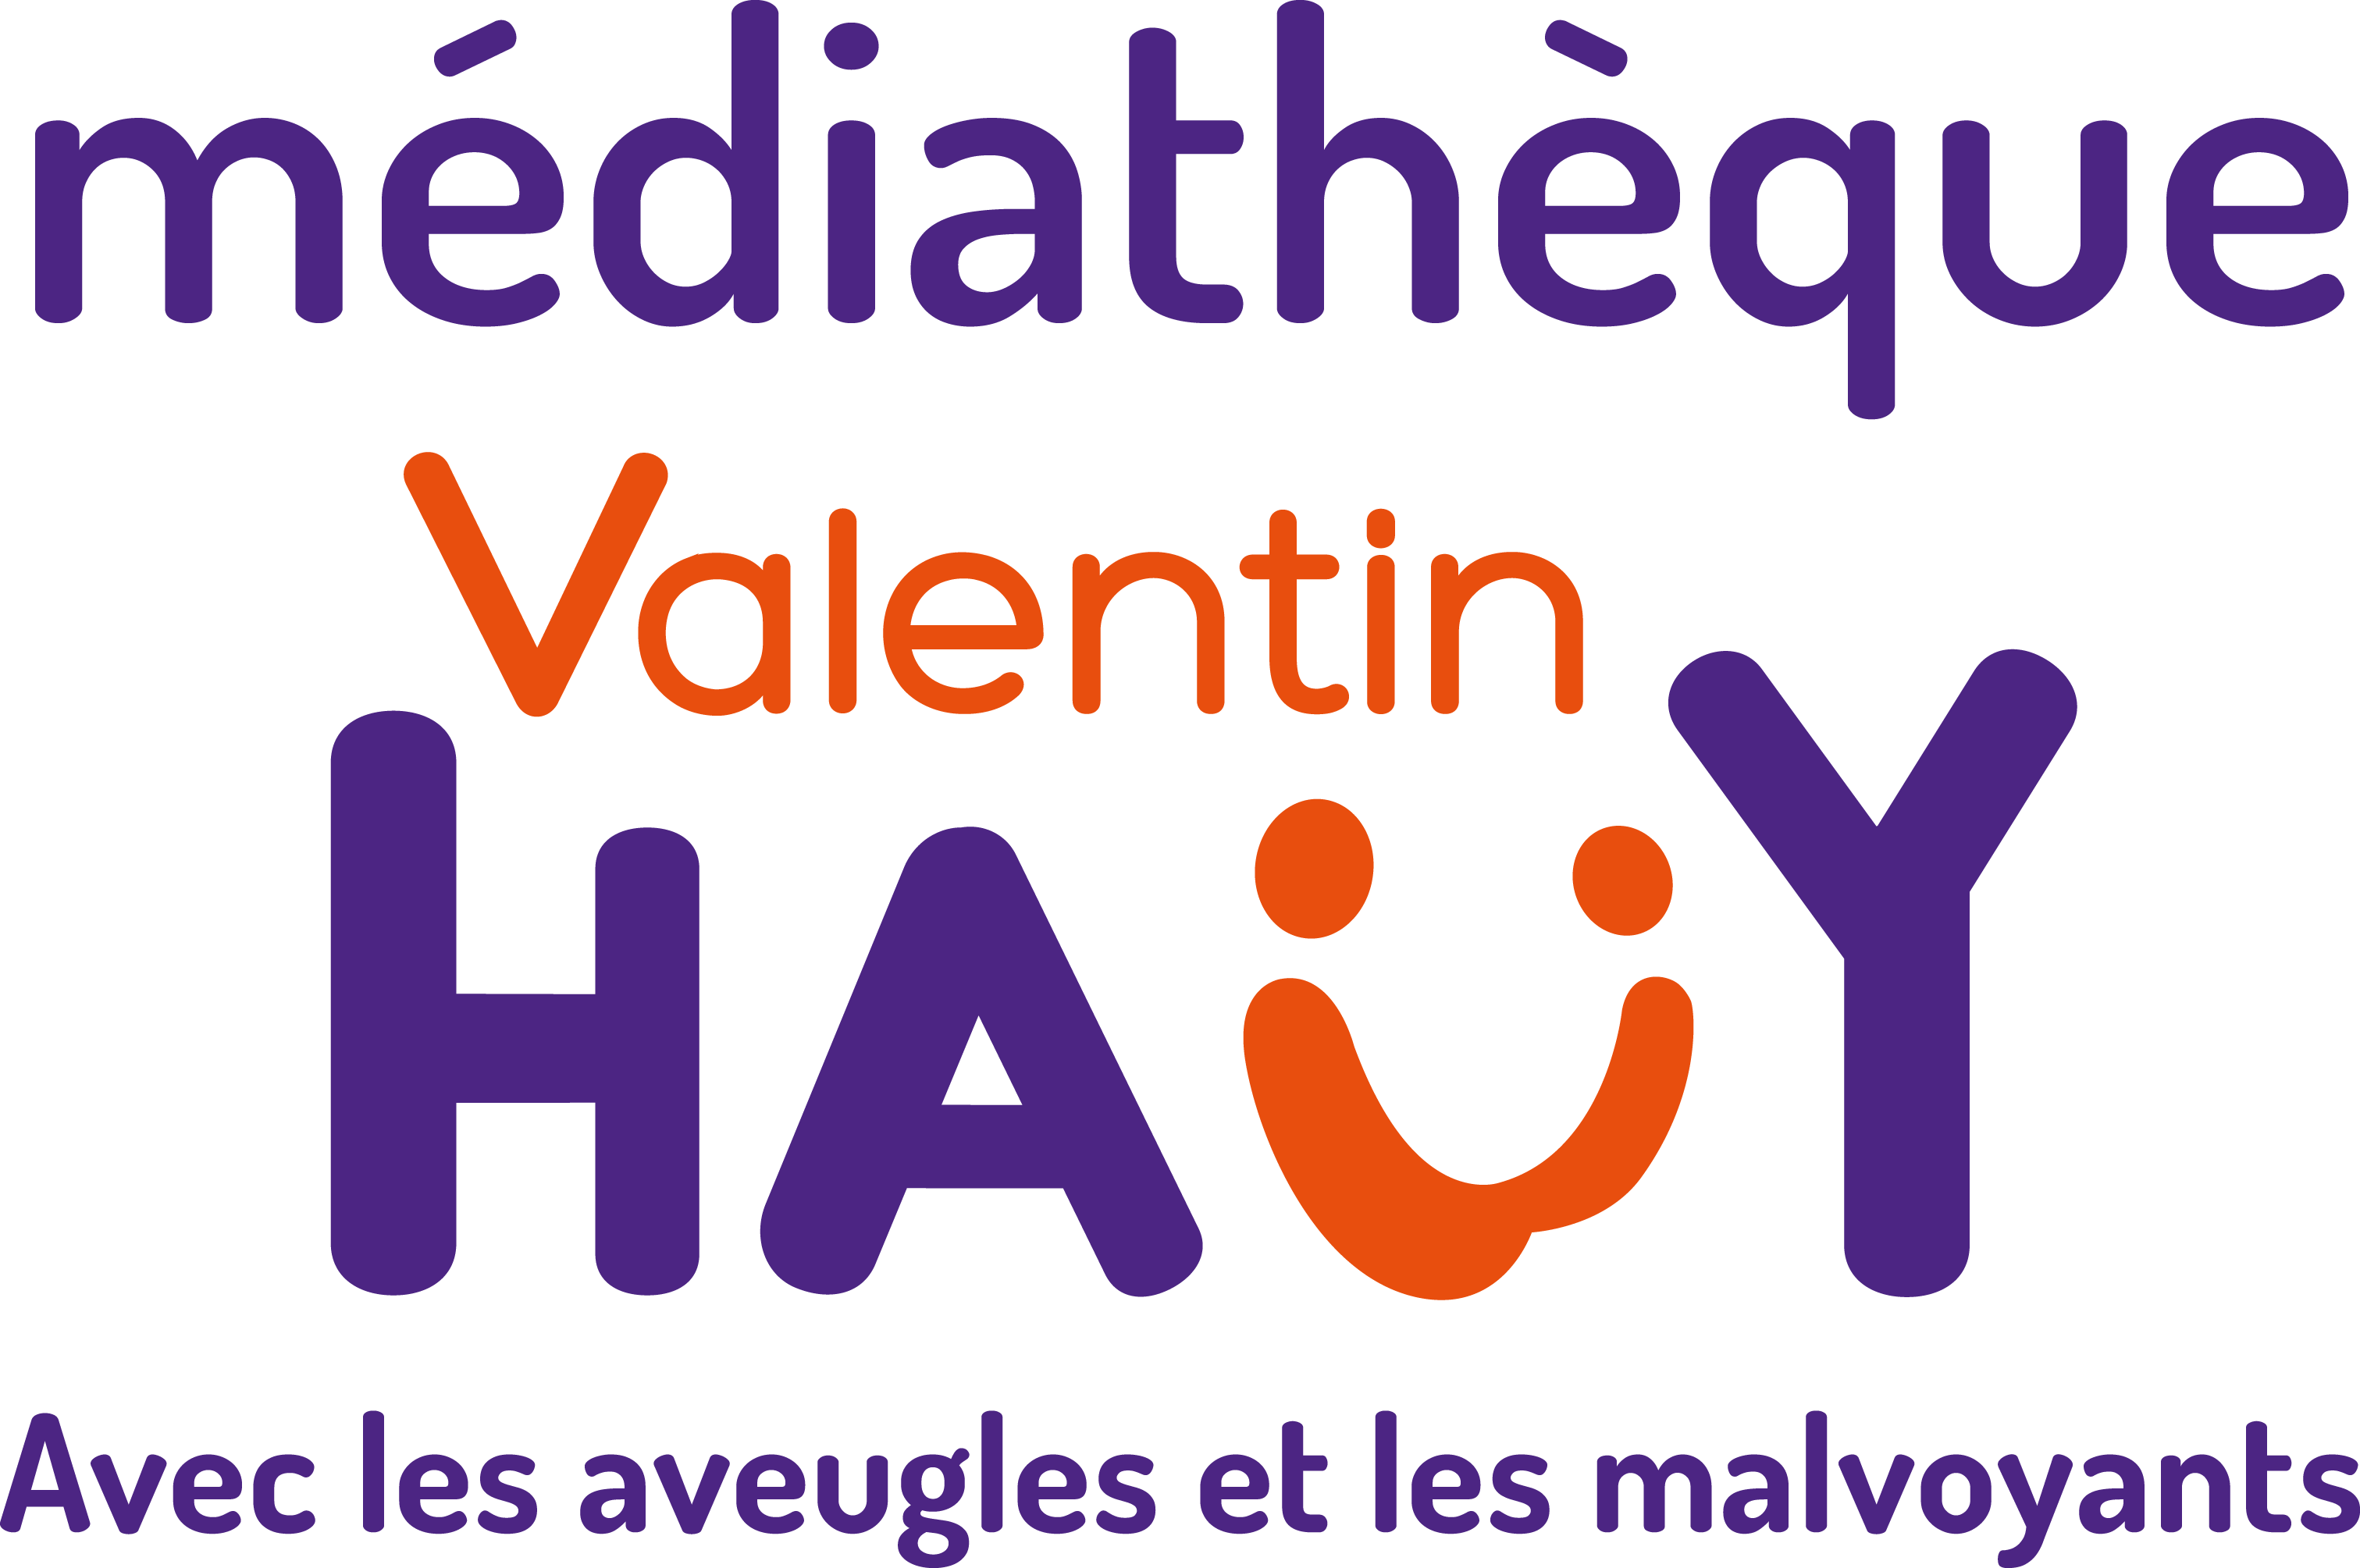 Médiathèque Valentin Haüy